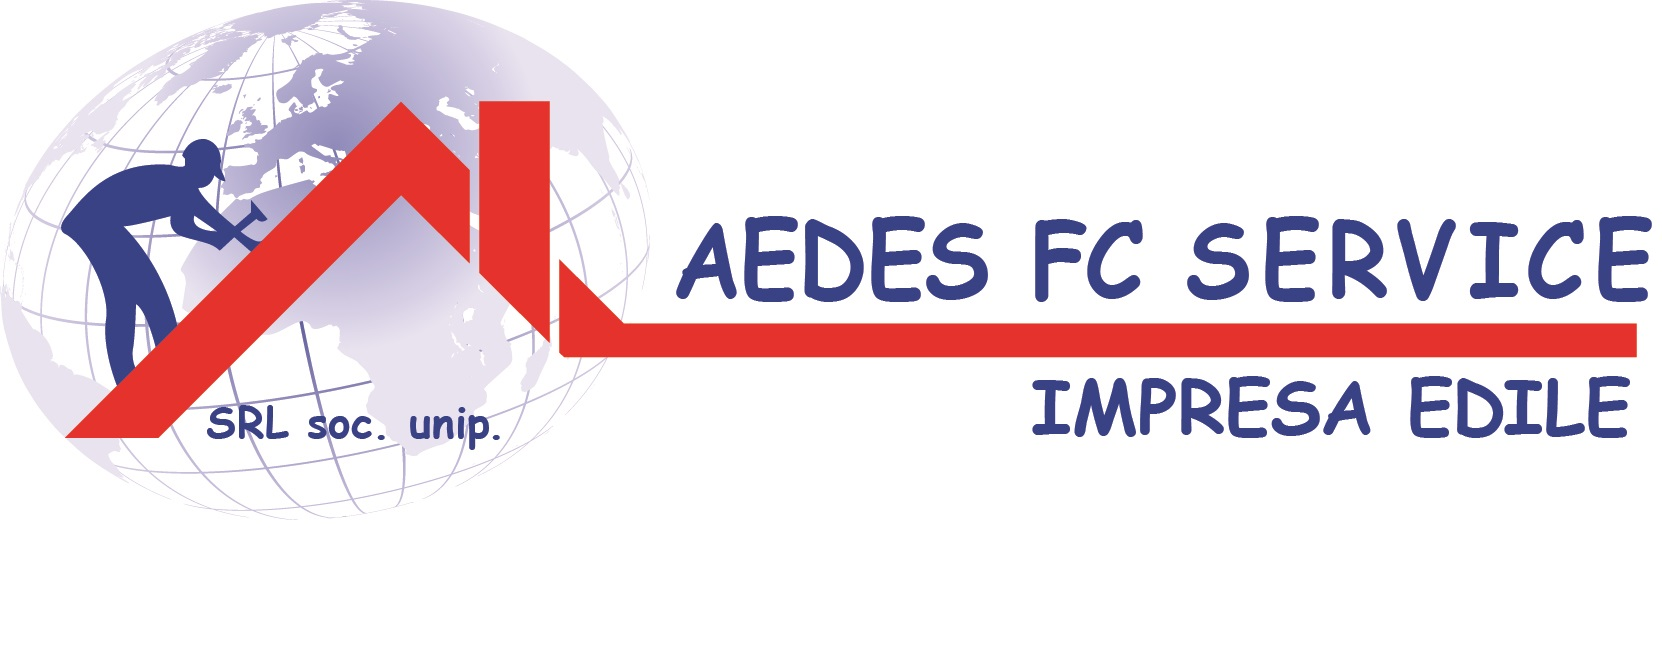 Aedes Fc Service Srl